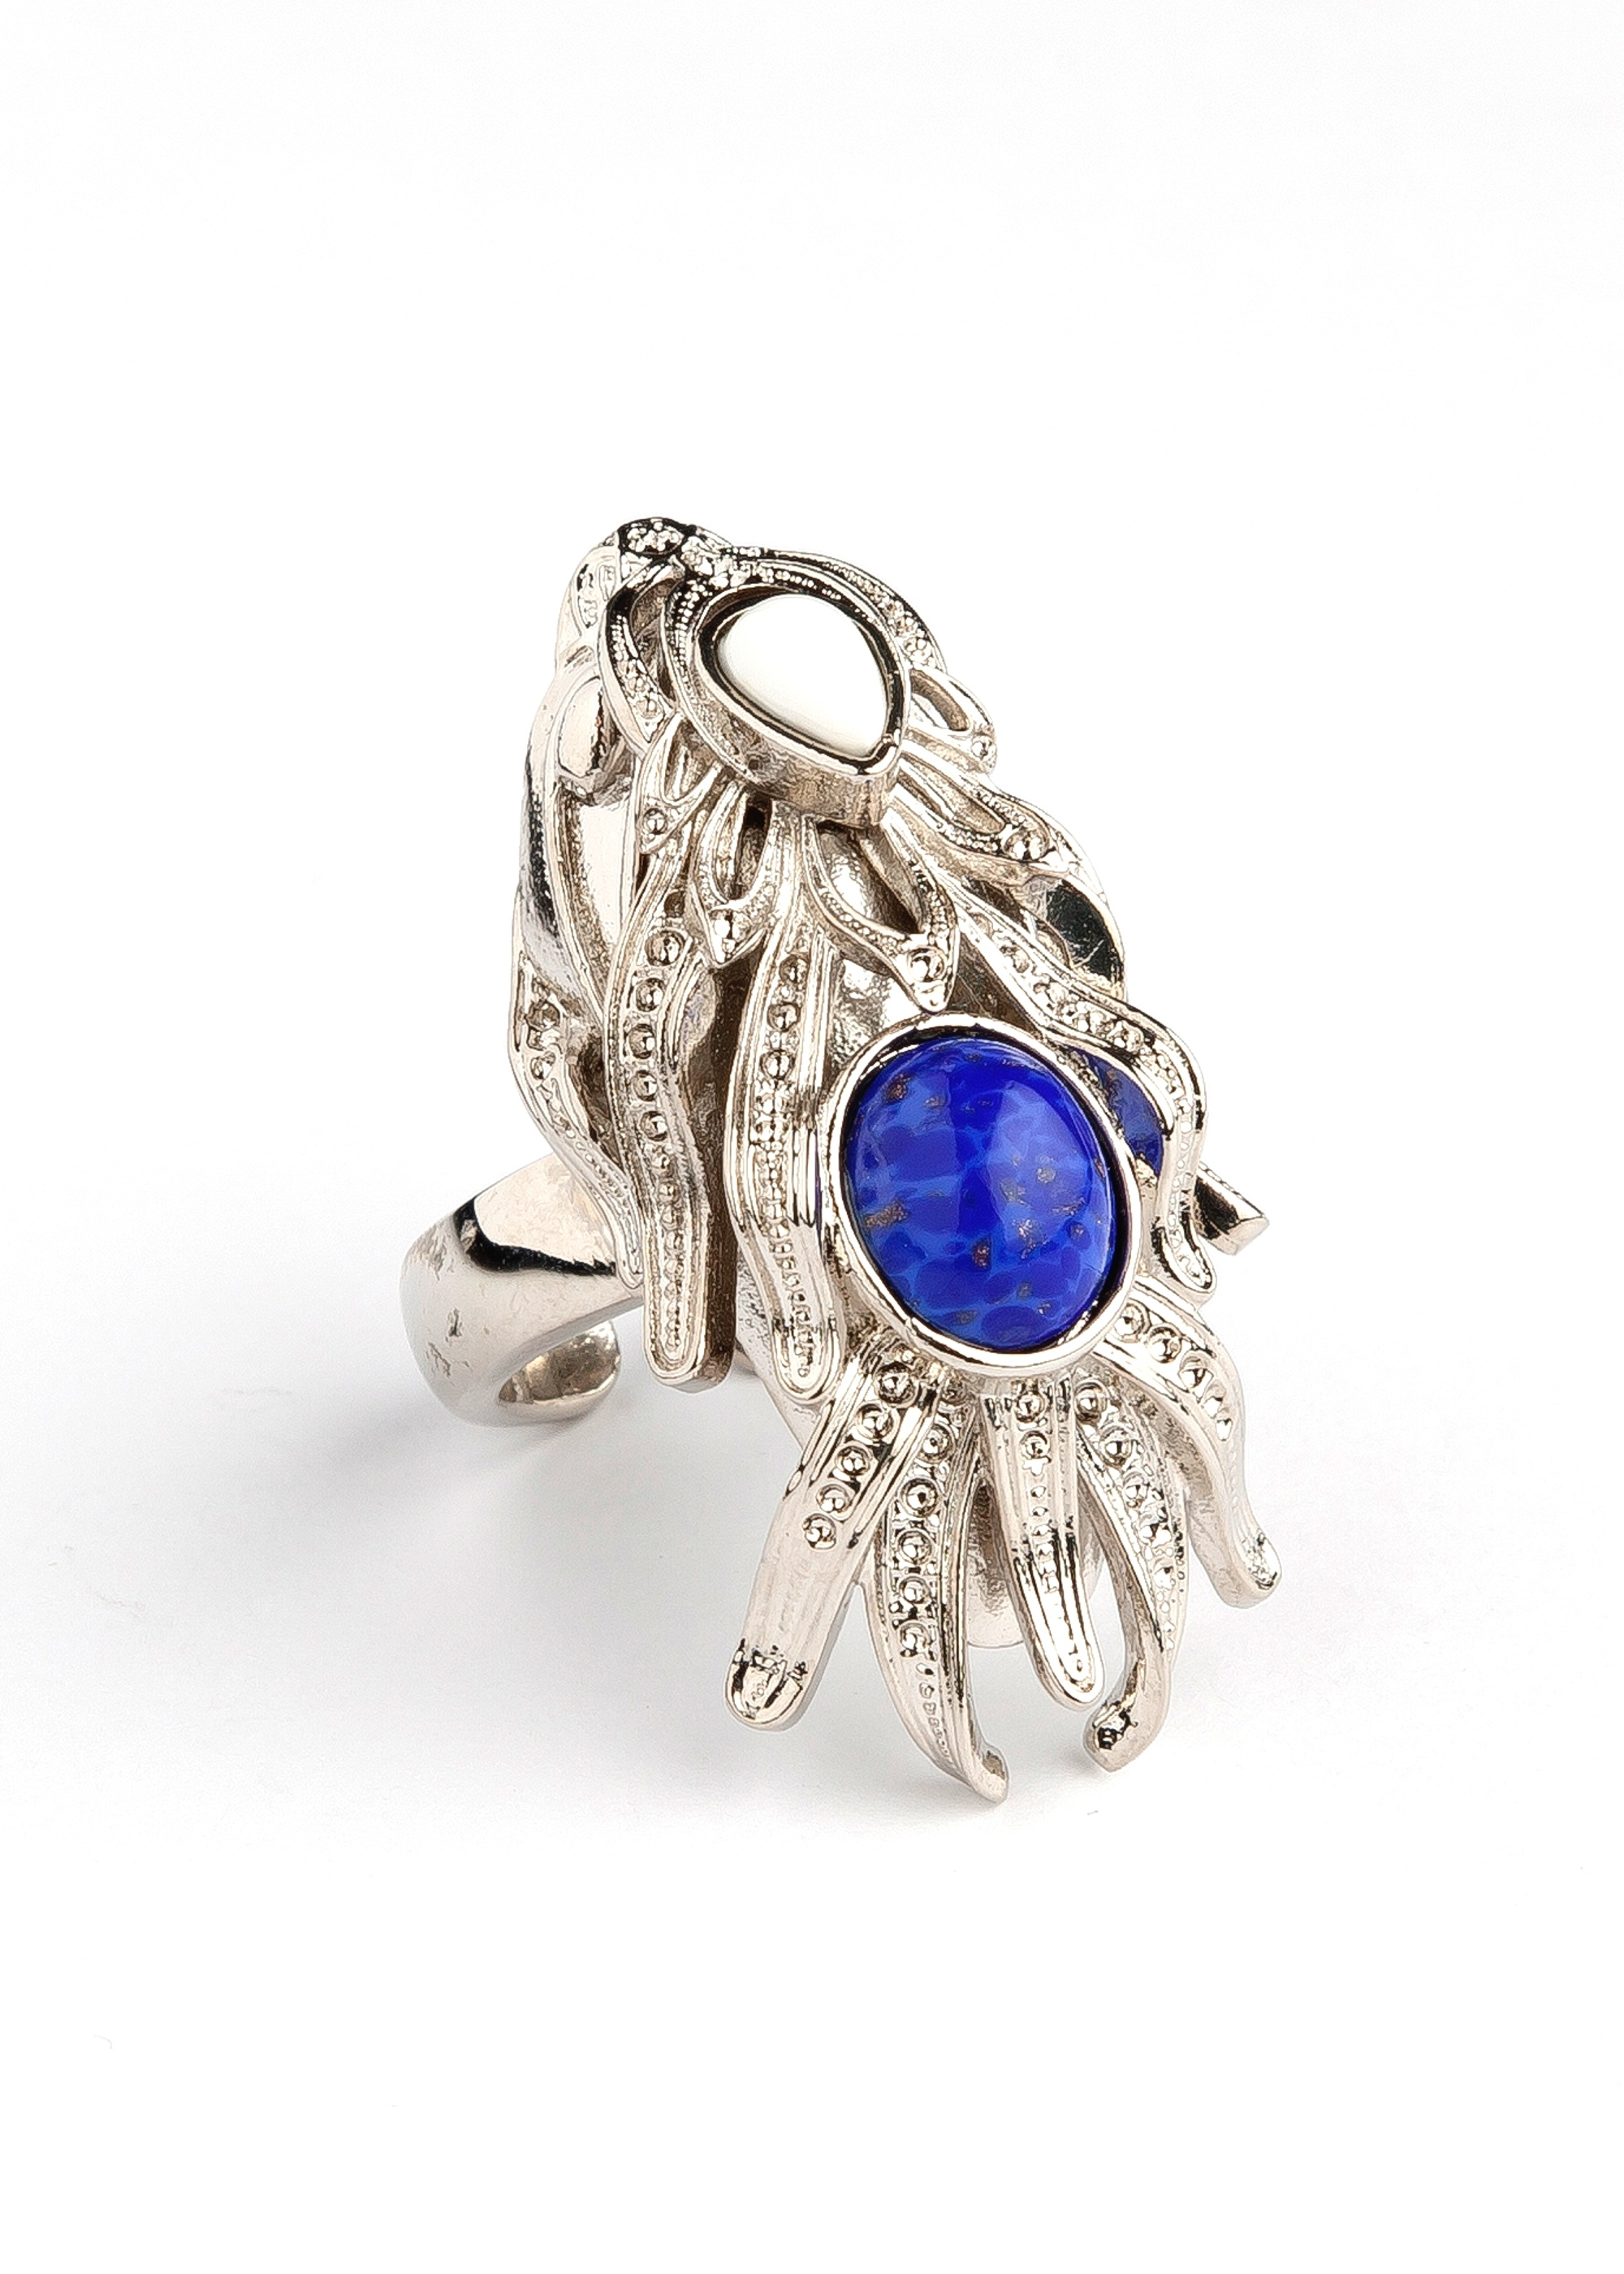 Silver Dragonfish Luxury Ring by Sonia Petroff on curated-crowd.com